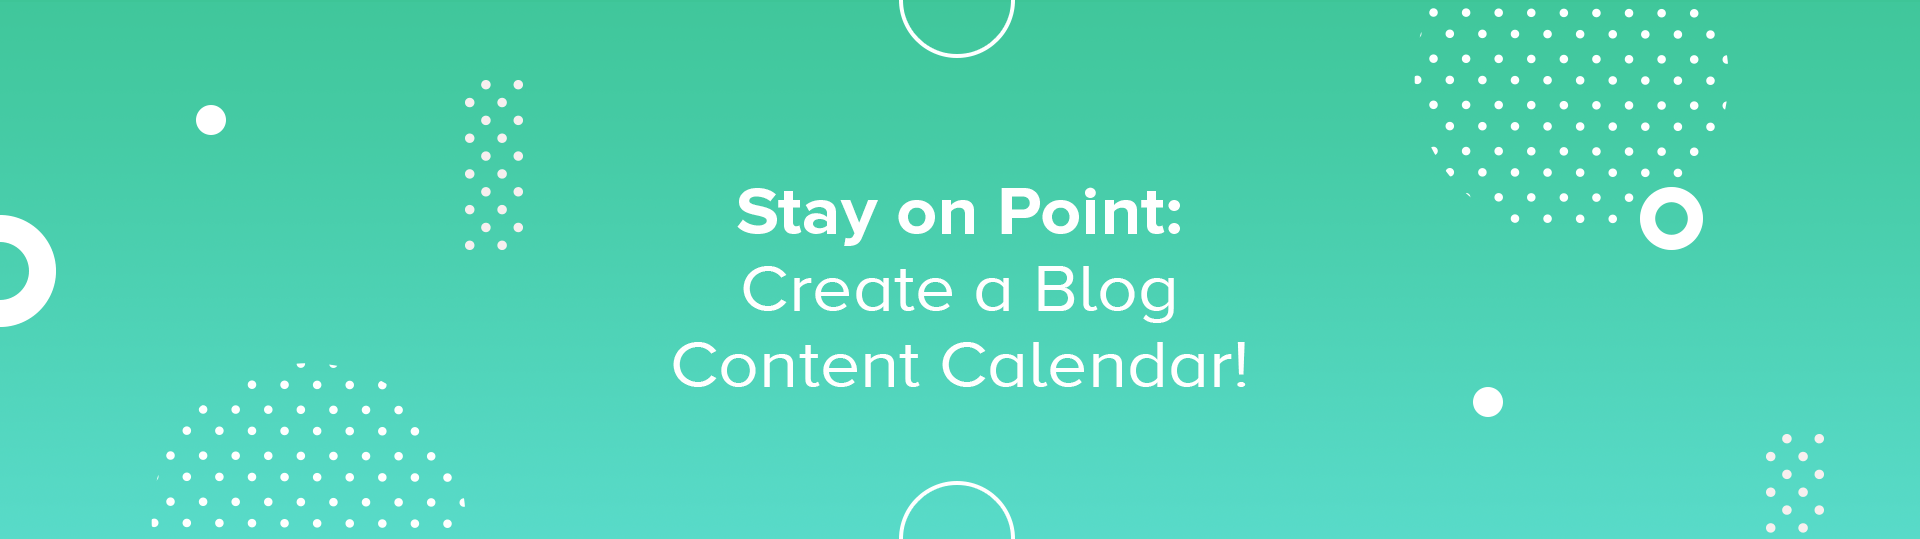 "Blog Header Image ""Stay on Point - Create a Blog Content Calendar!"""